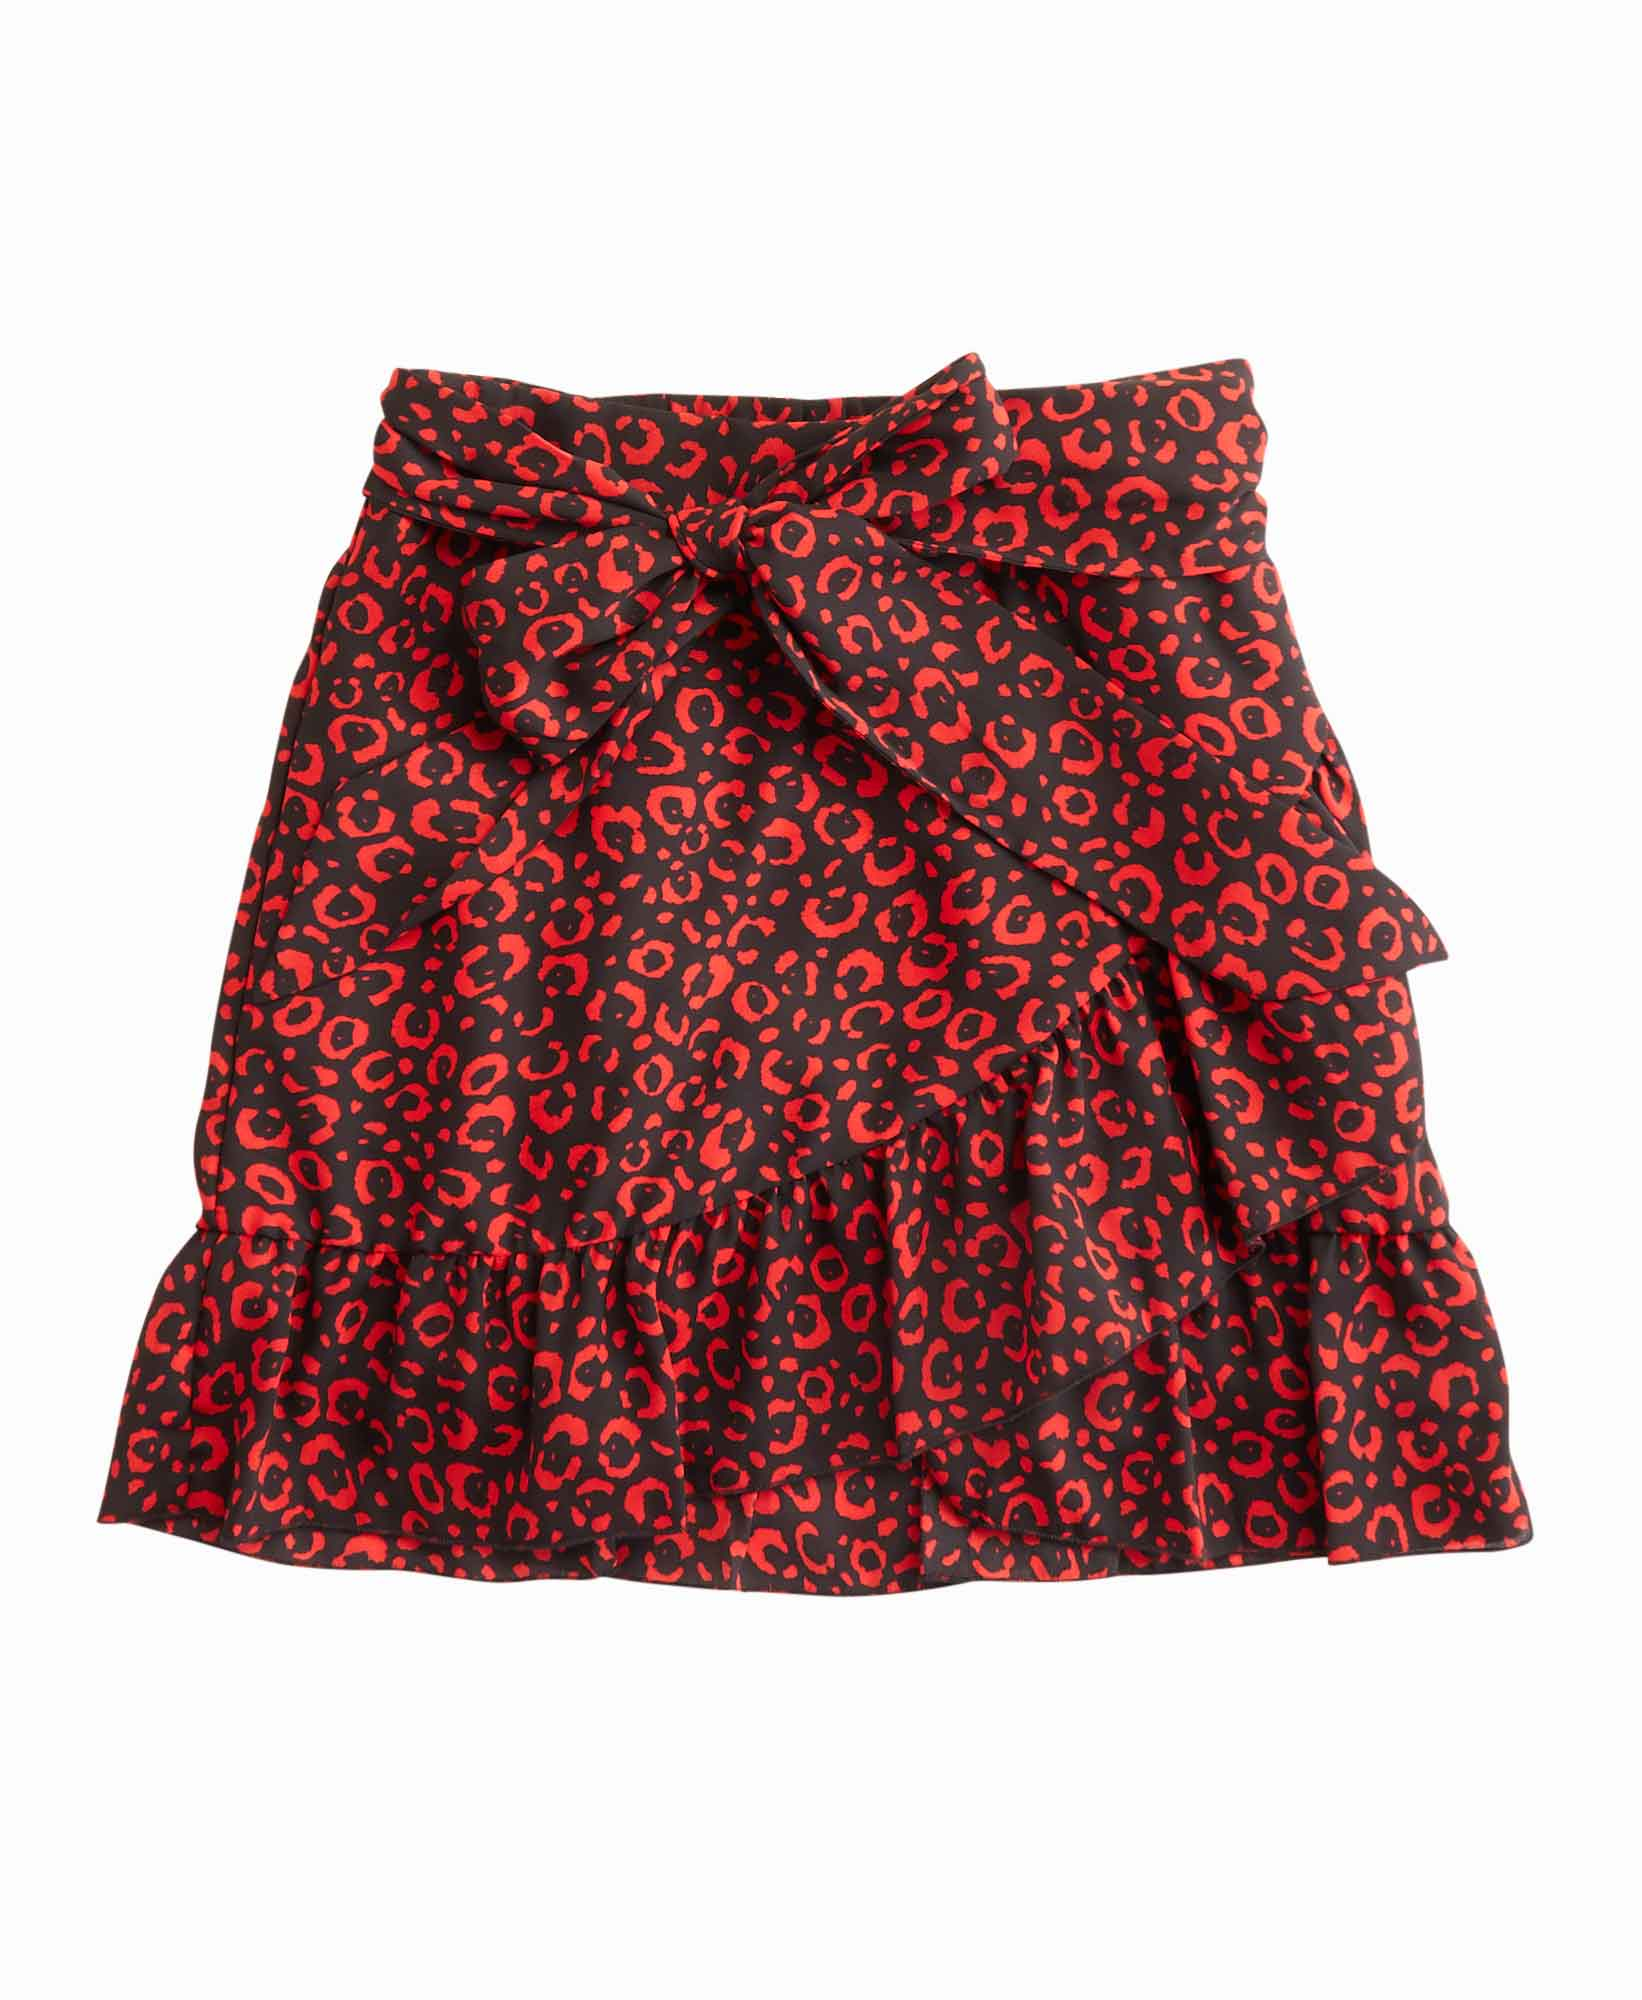 Piccola Ludo Horus Wrap Skirt with Ruffles